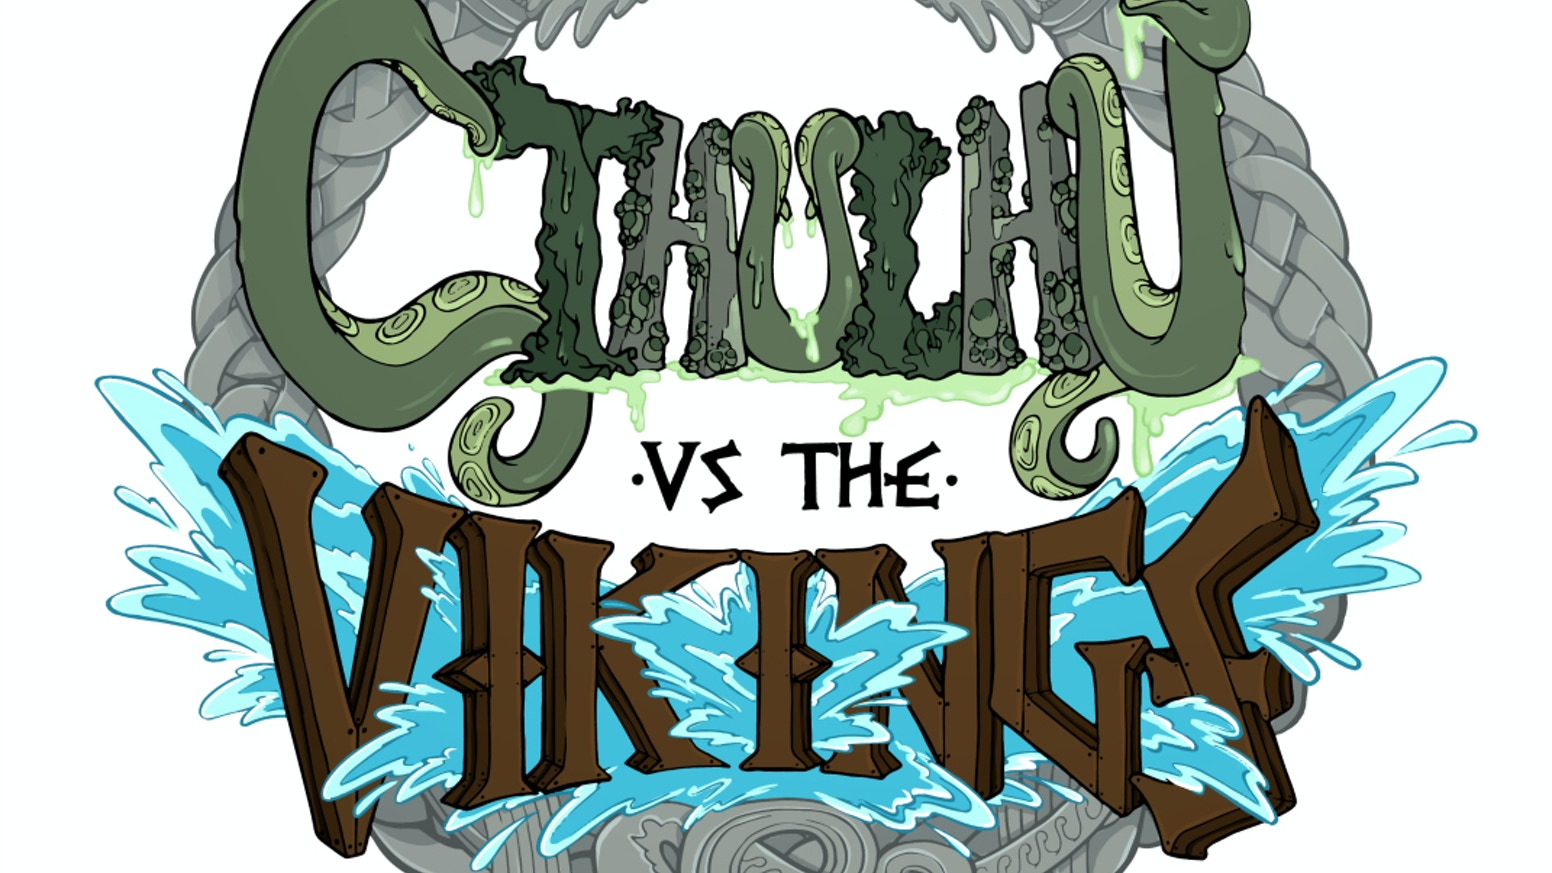 Cthulhu vs. The Vikings?  Hell, yes!  An ancient Viking game updated with an incredible story in comic form!